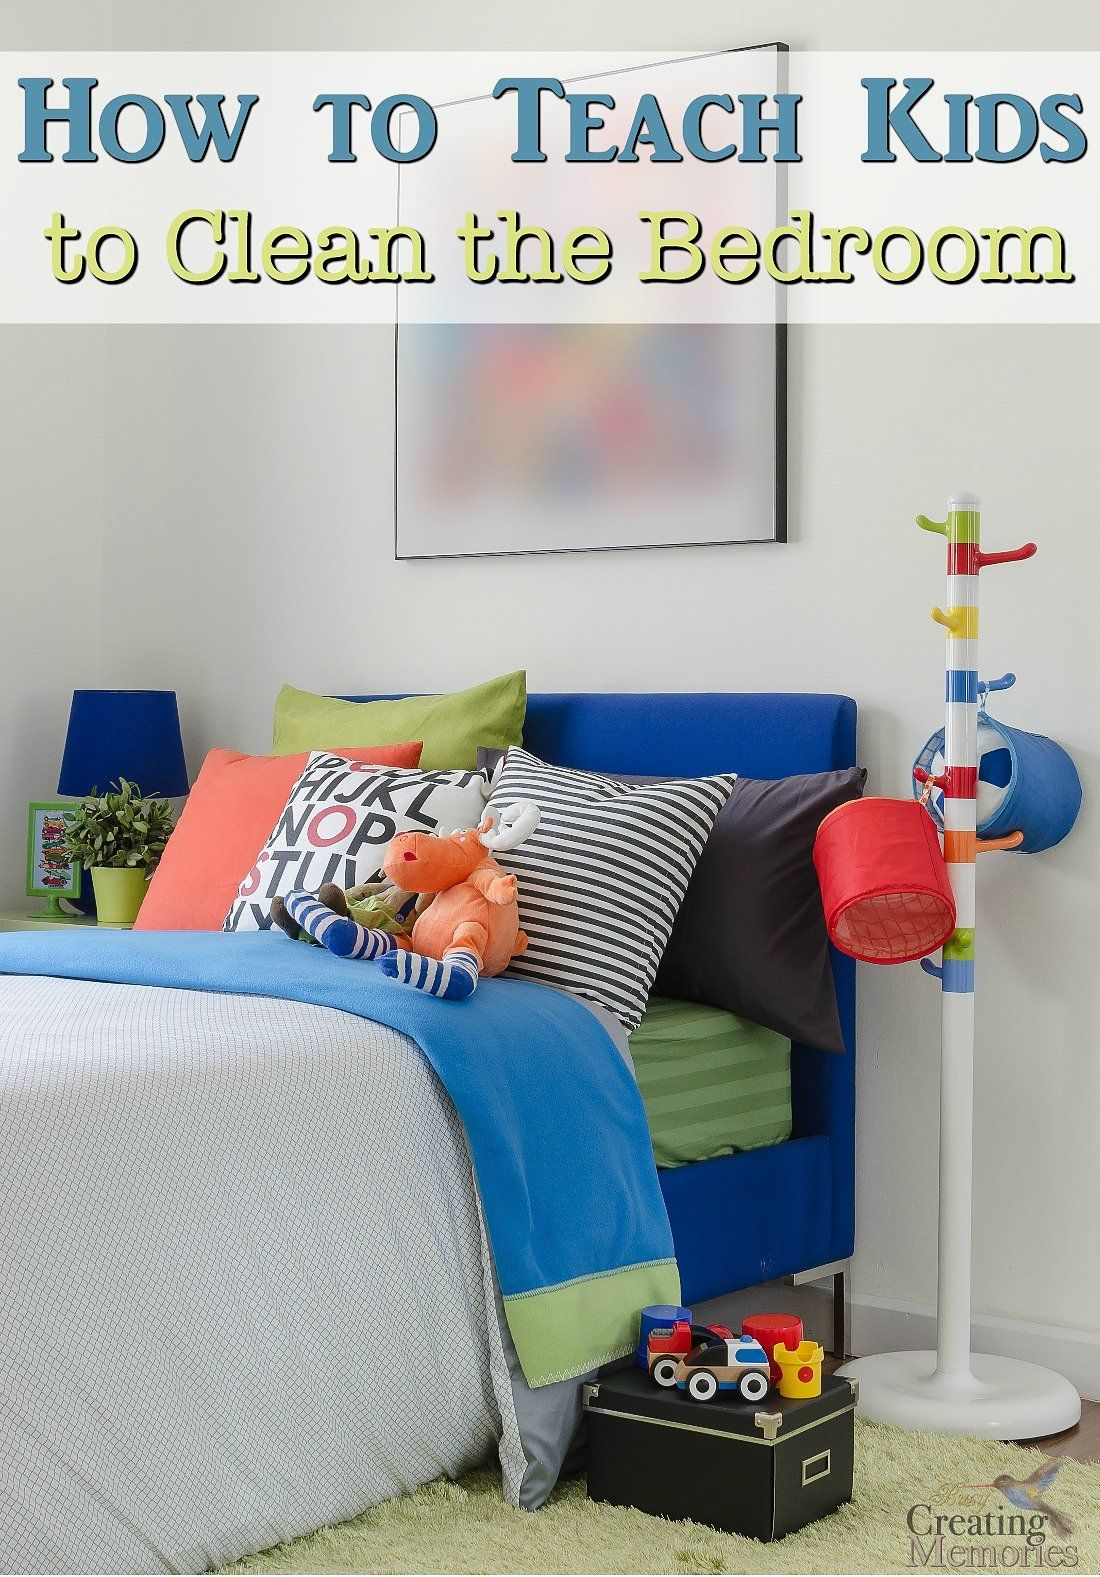 How To Clean Your Room! My Fast & Easy 4 Step System - YouTube